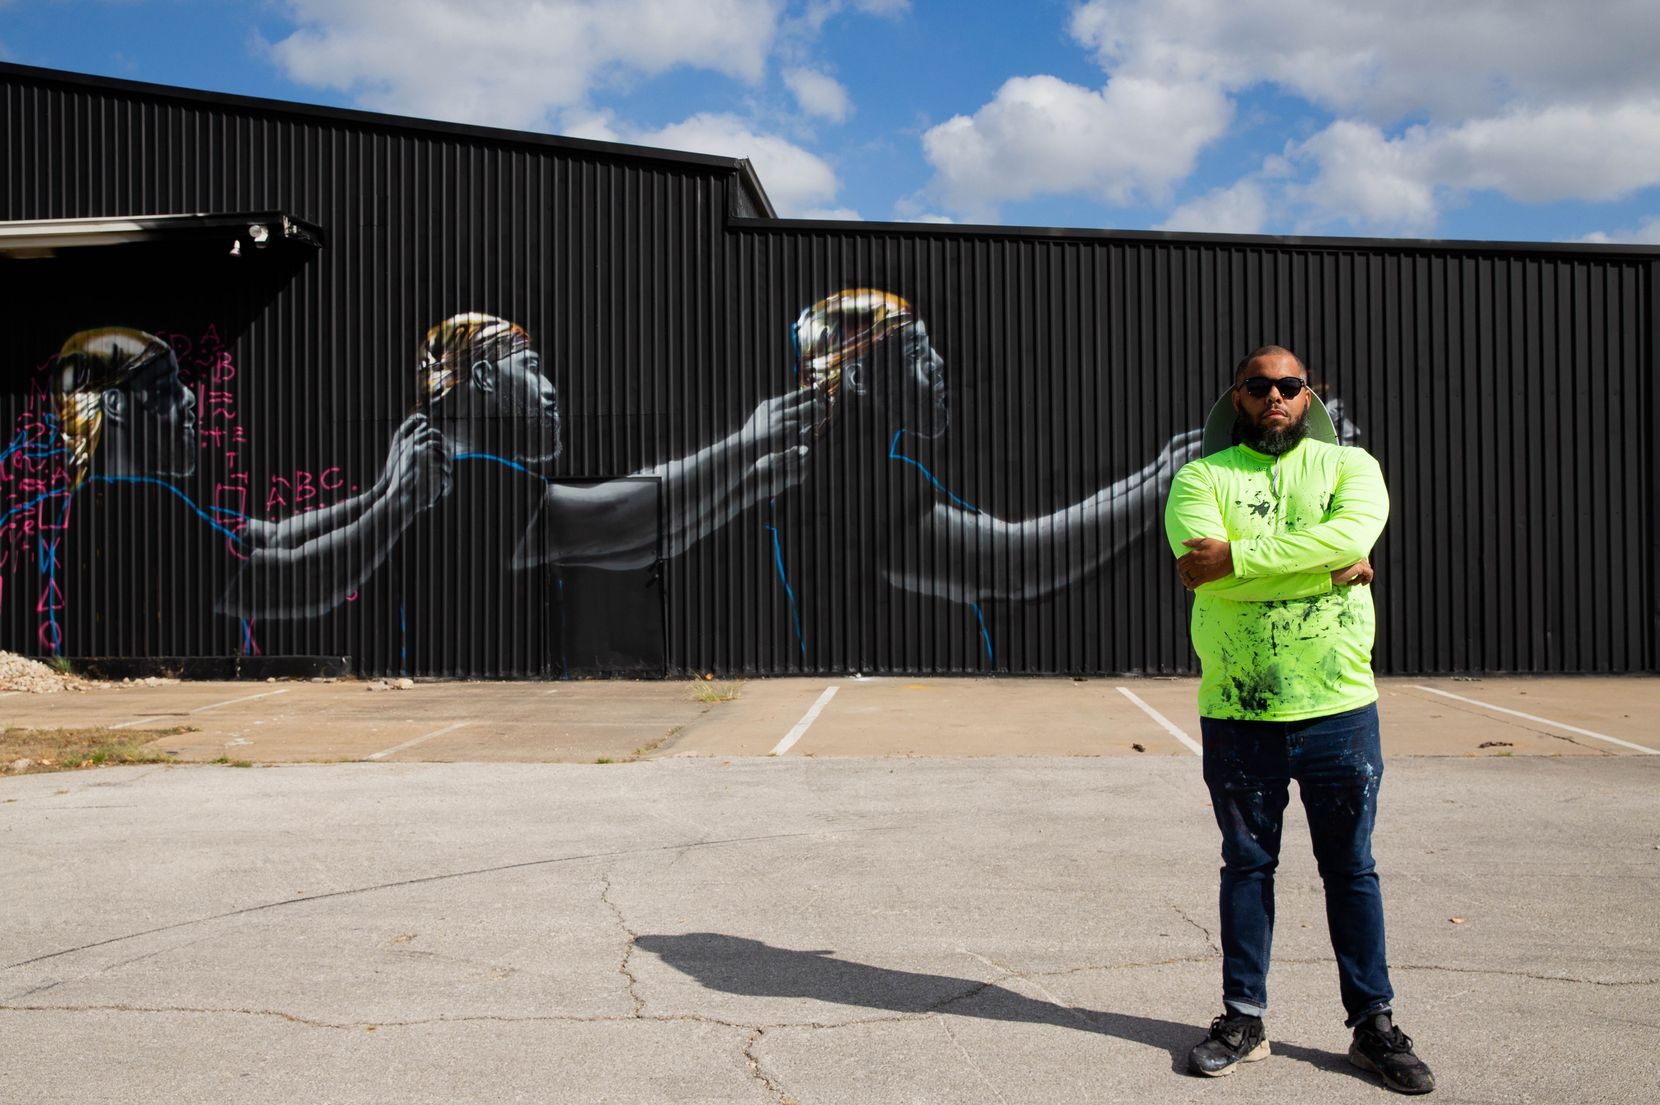 Jeremy Biggers poses in front of his mural as part of The Wild West Mural Fest in Dallas on Tuesday, Oct. 22, 2020. Biggers mural depicts how Black men can hold each other responsible while achieving their potential.